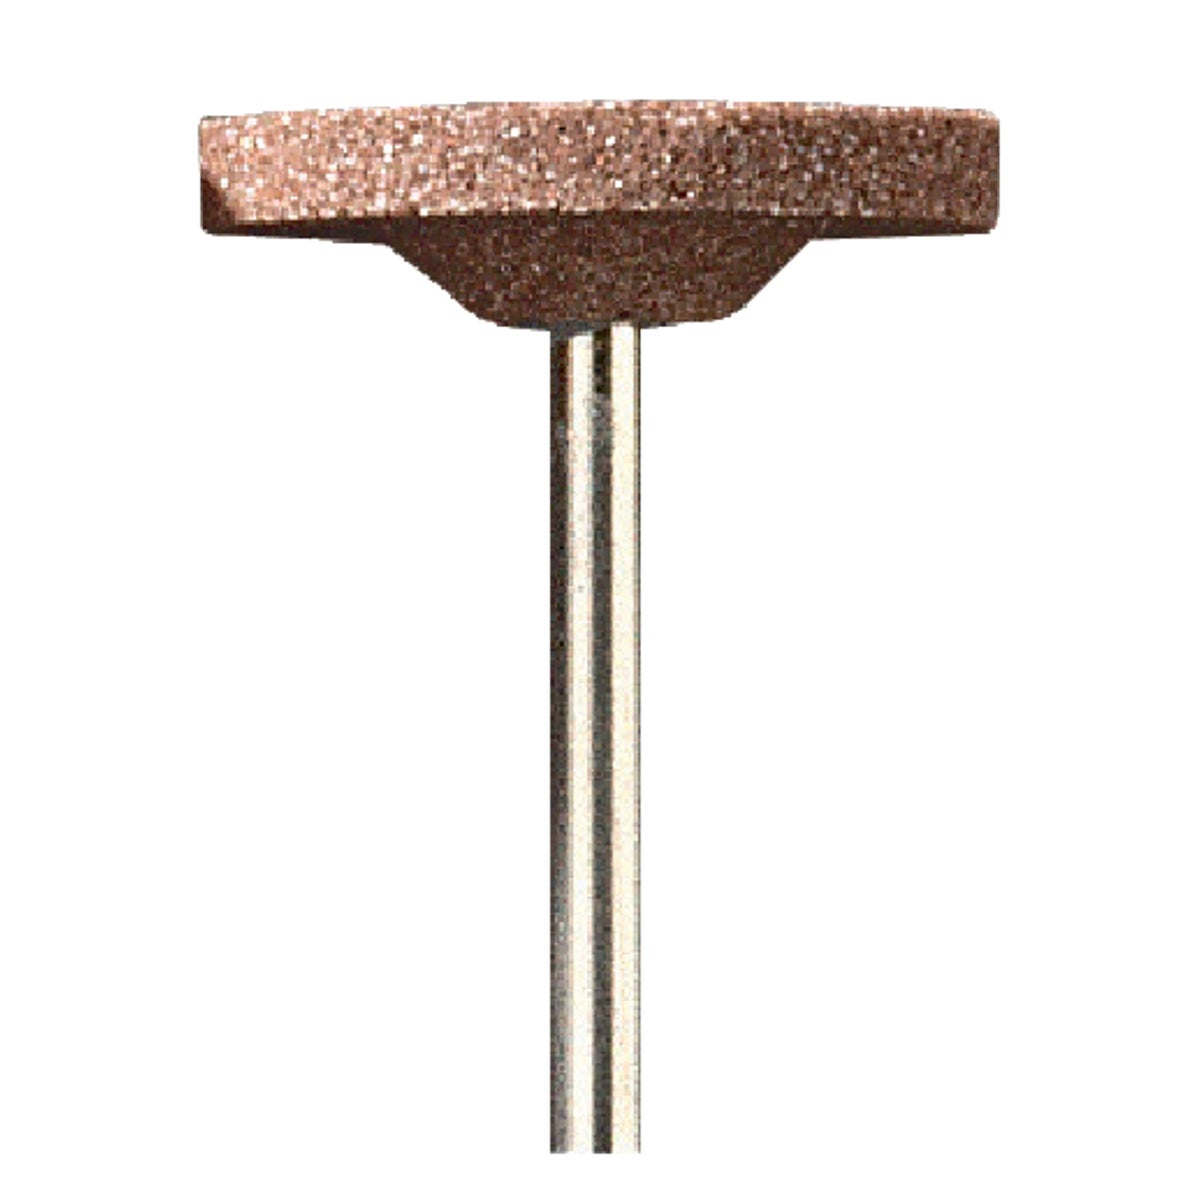 "1""DIA GRINDING STONE - 8215 by Dremel Mfg Co"